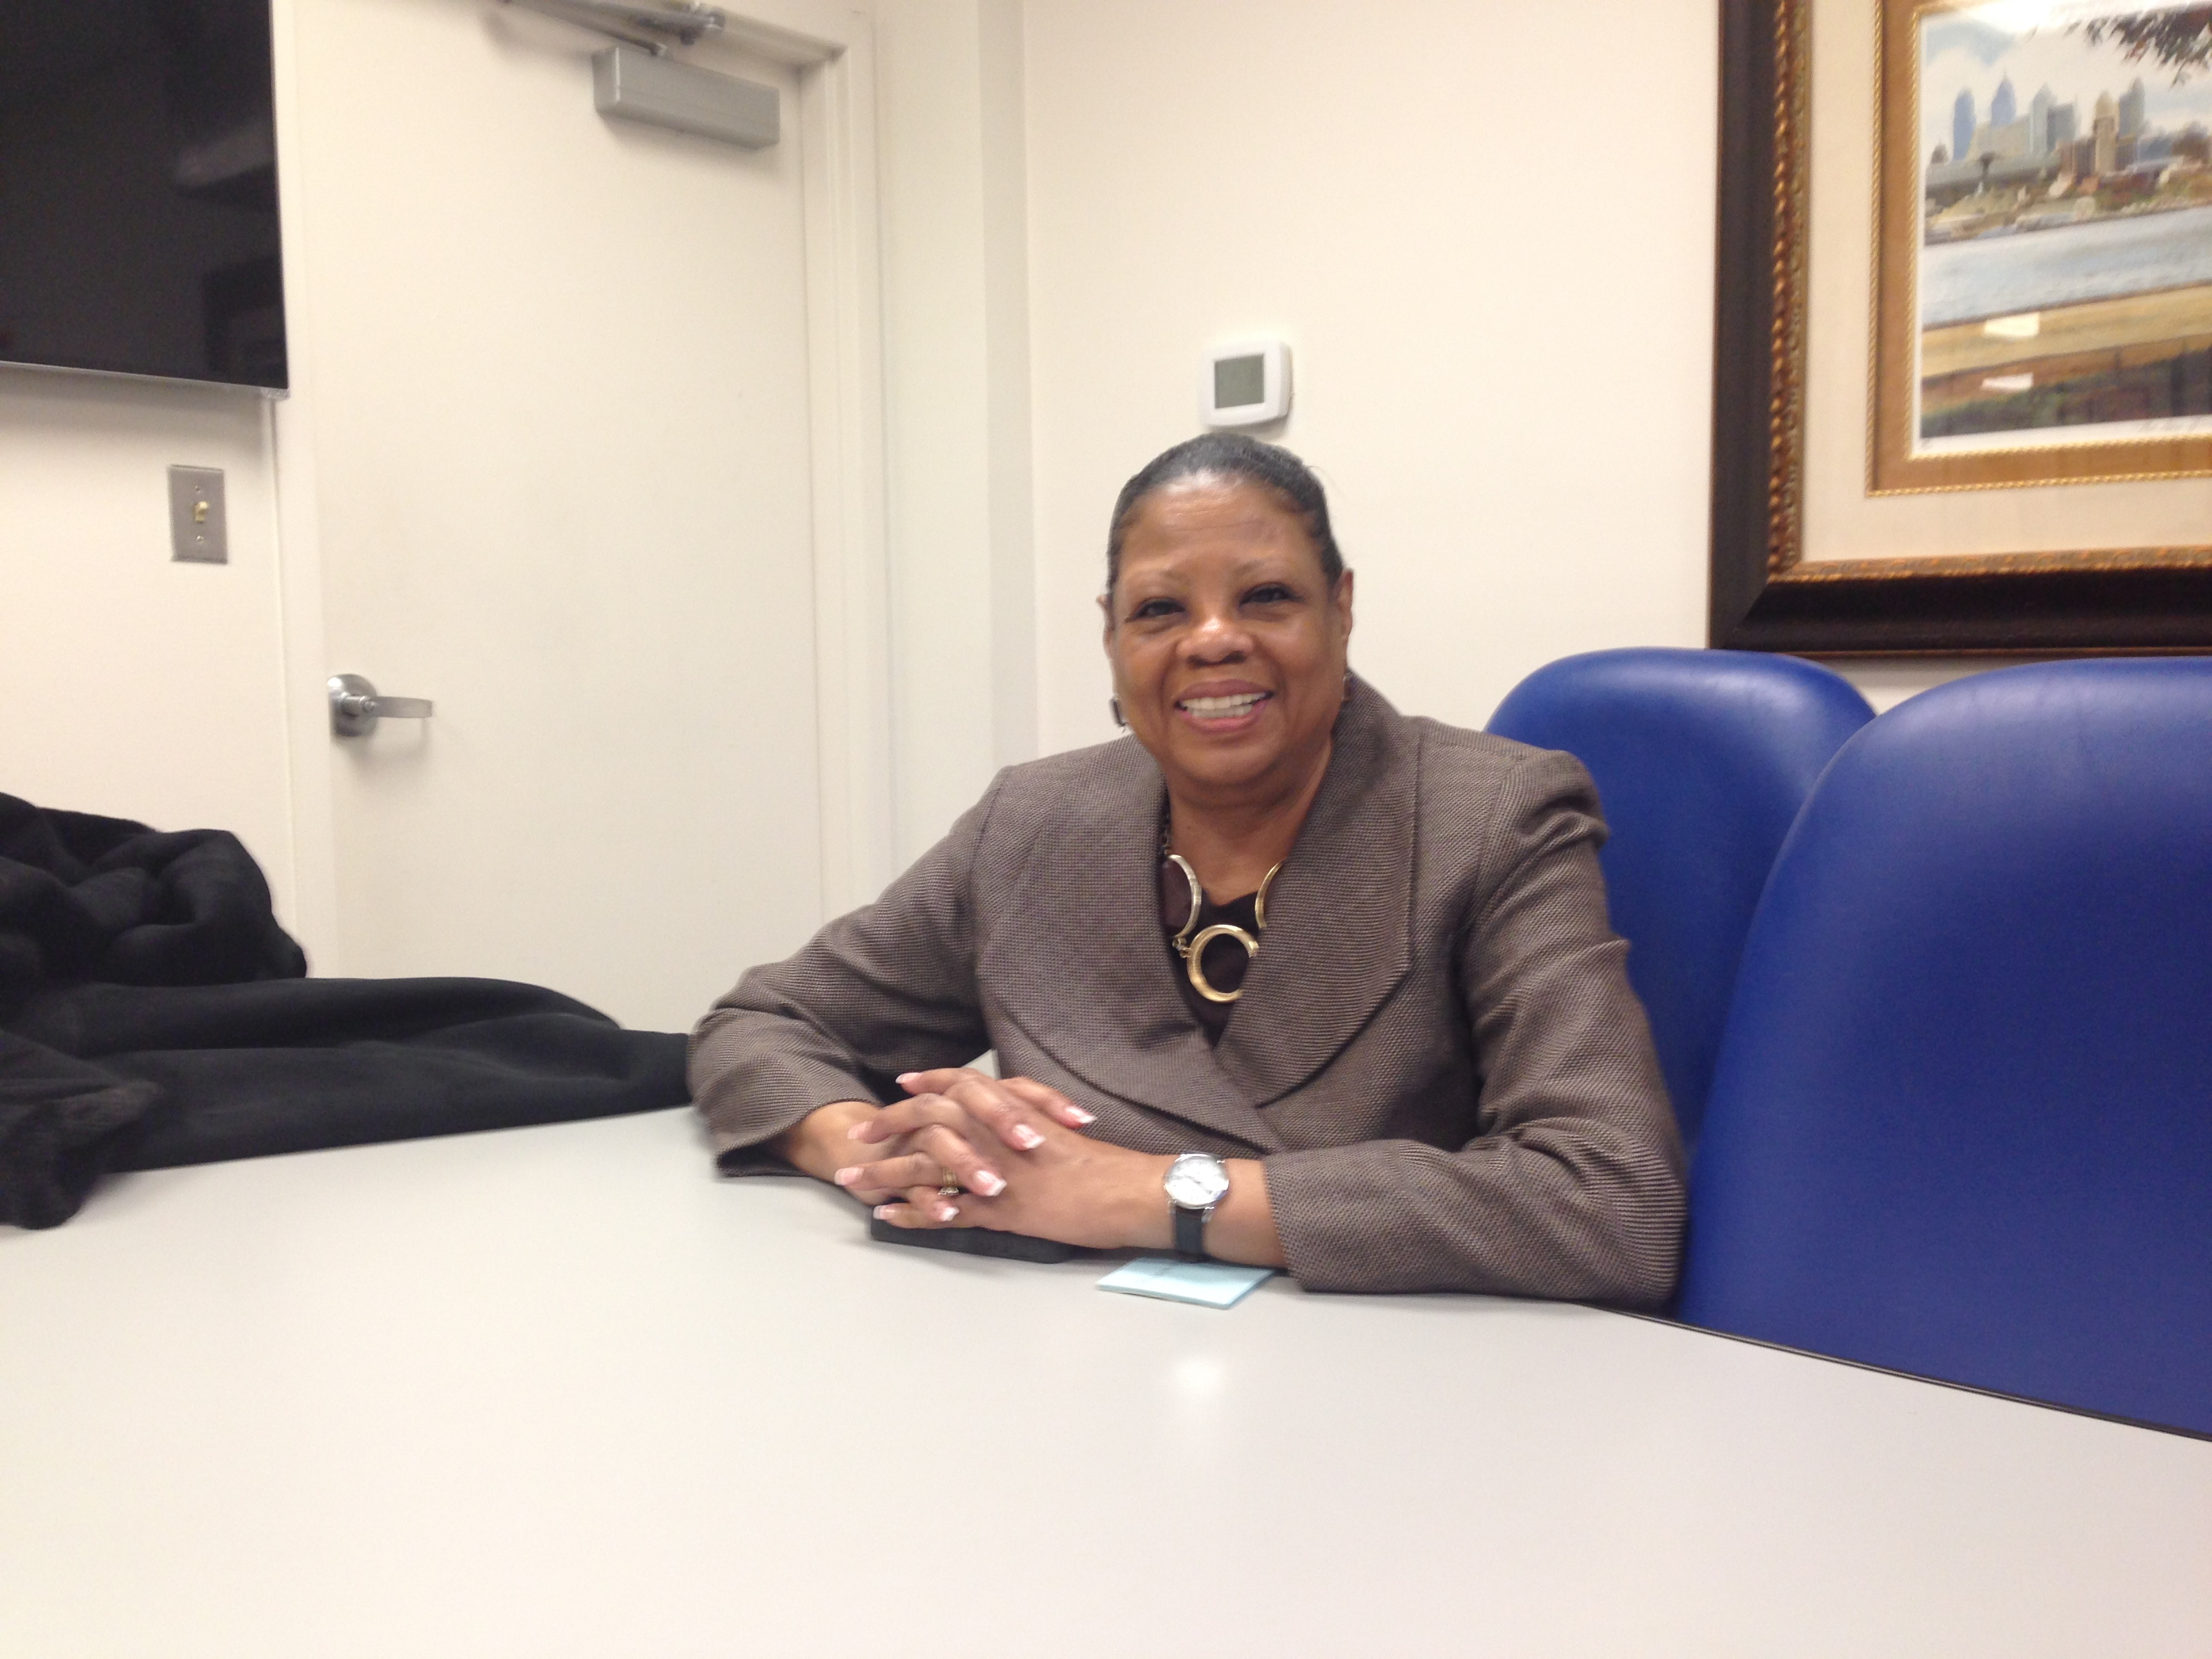 Veronica Joyner, Founder and Chief Administrative Officer of the Mathematics, Civics and Sciences Charter School